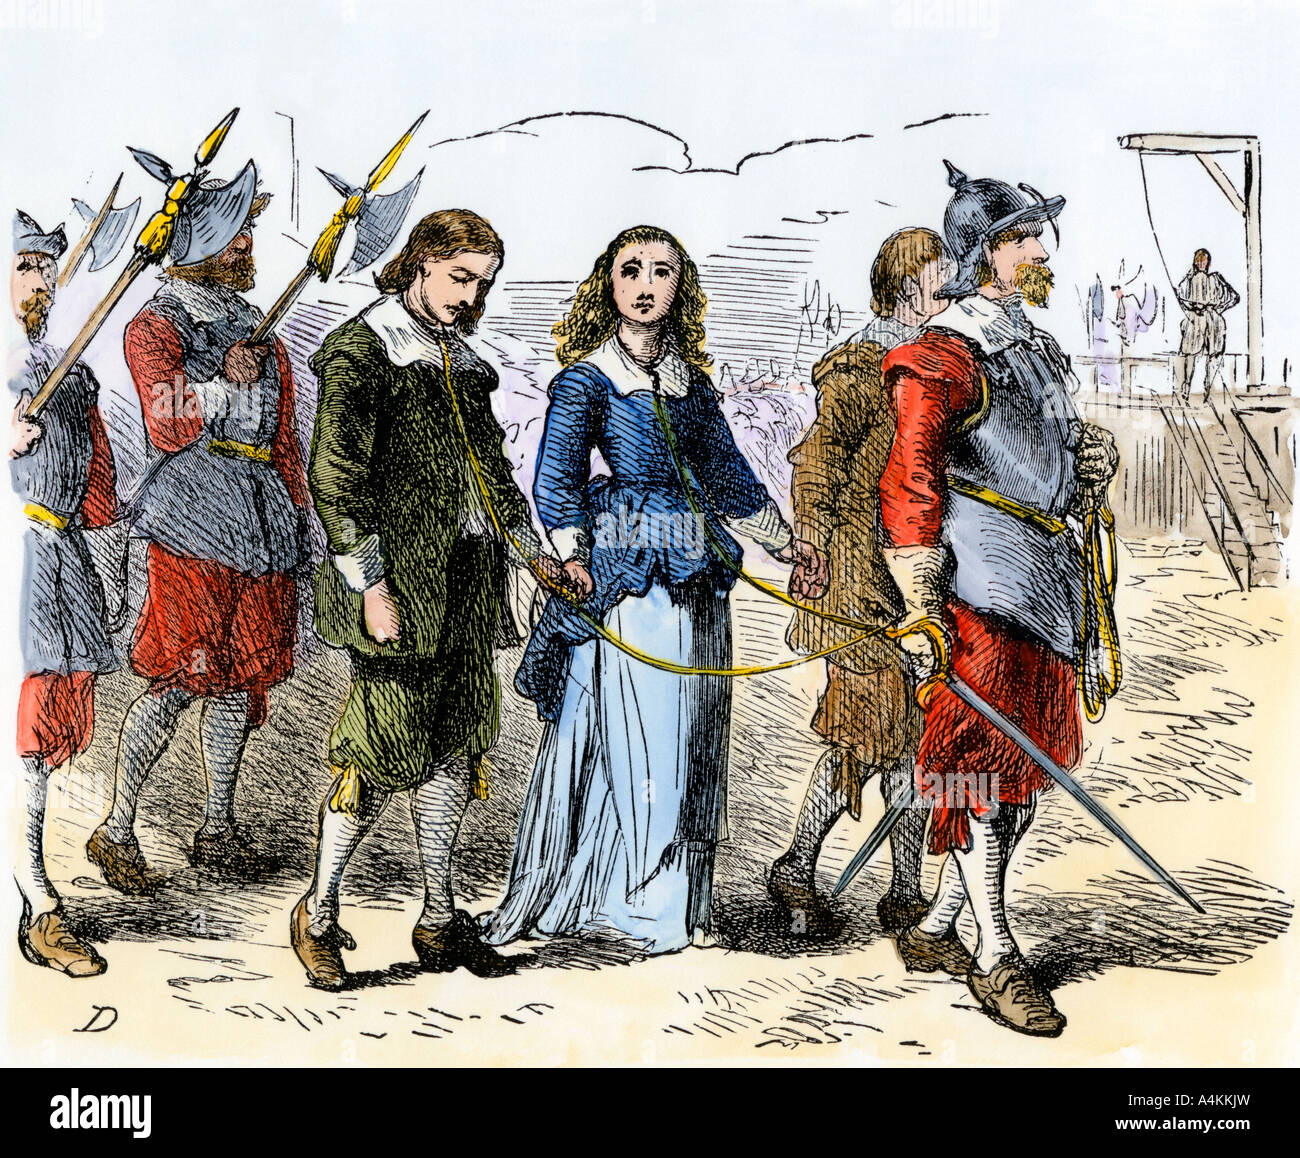 puritan irony in early colonies Ultimately both the puritans and quakers searched for both economic and religious freedom in america  we can begin to understand the irony of colonies who sought religious freedom and.